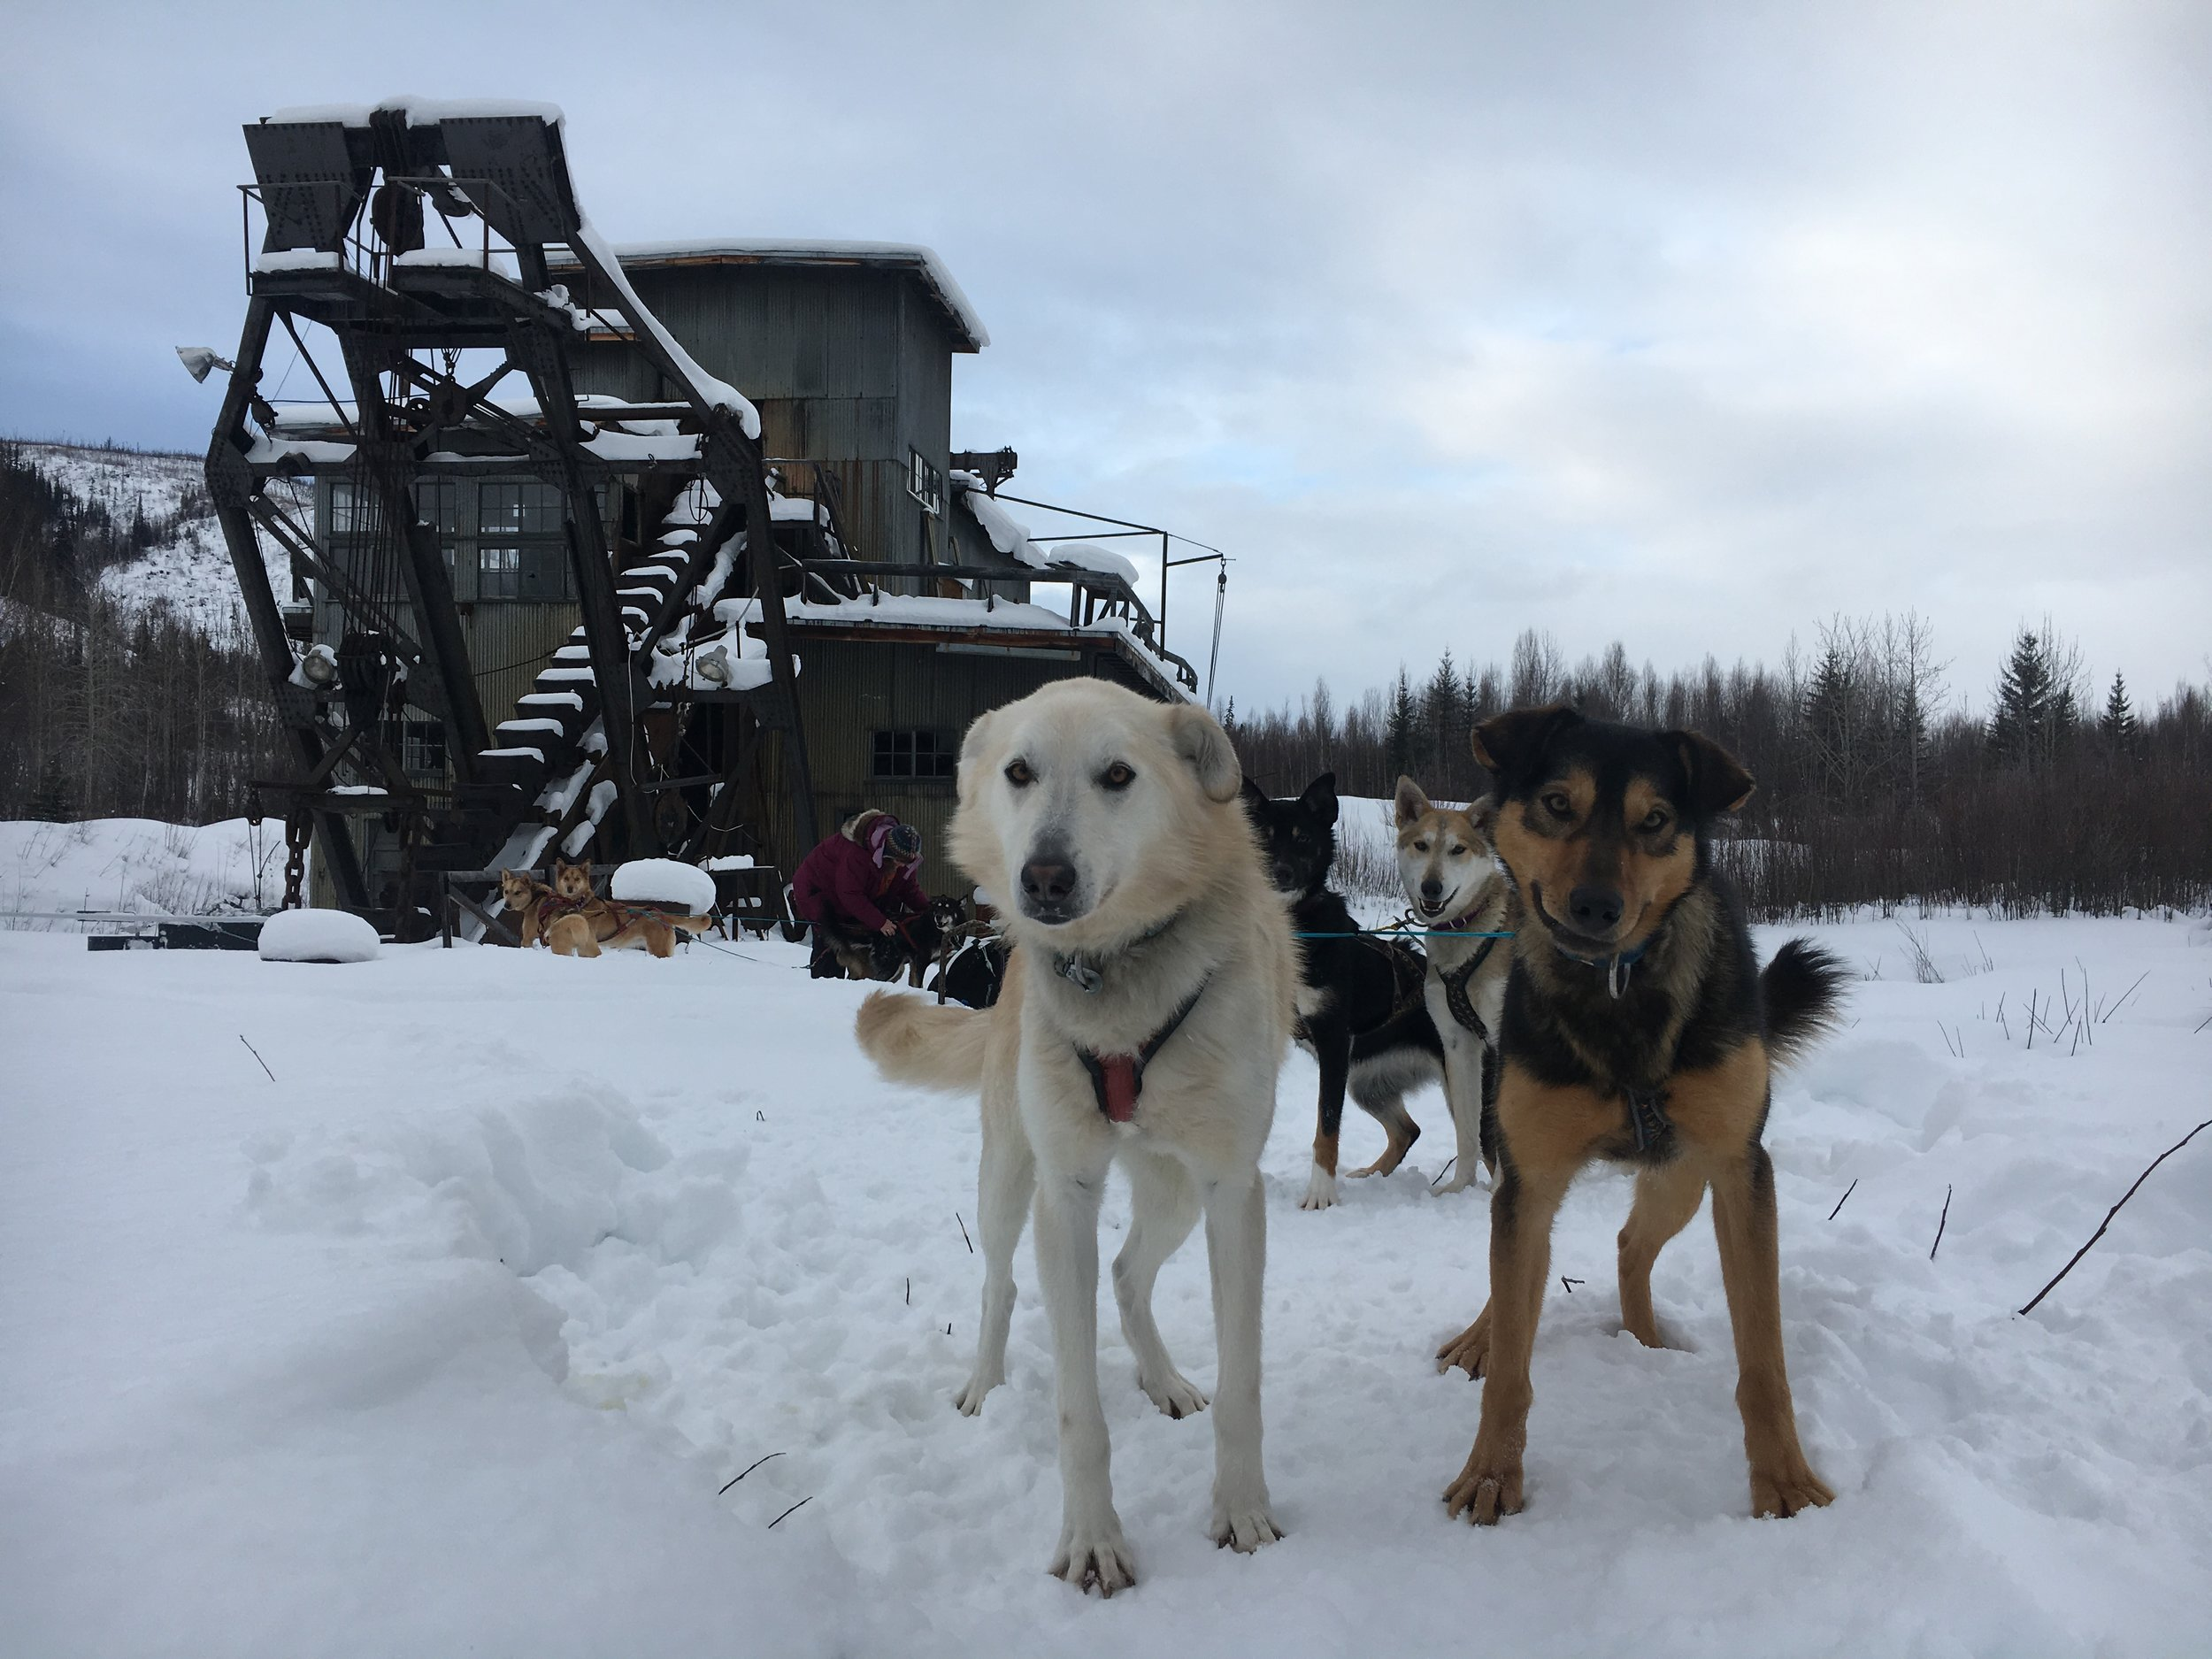 Lefty and Ewok with the Coal Creek Dredge